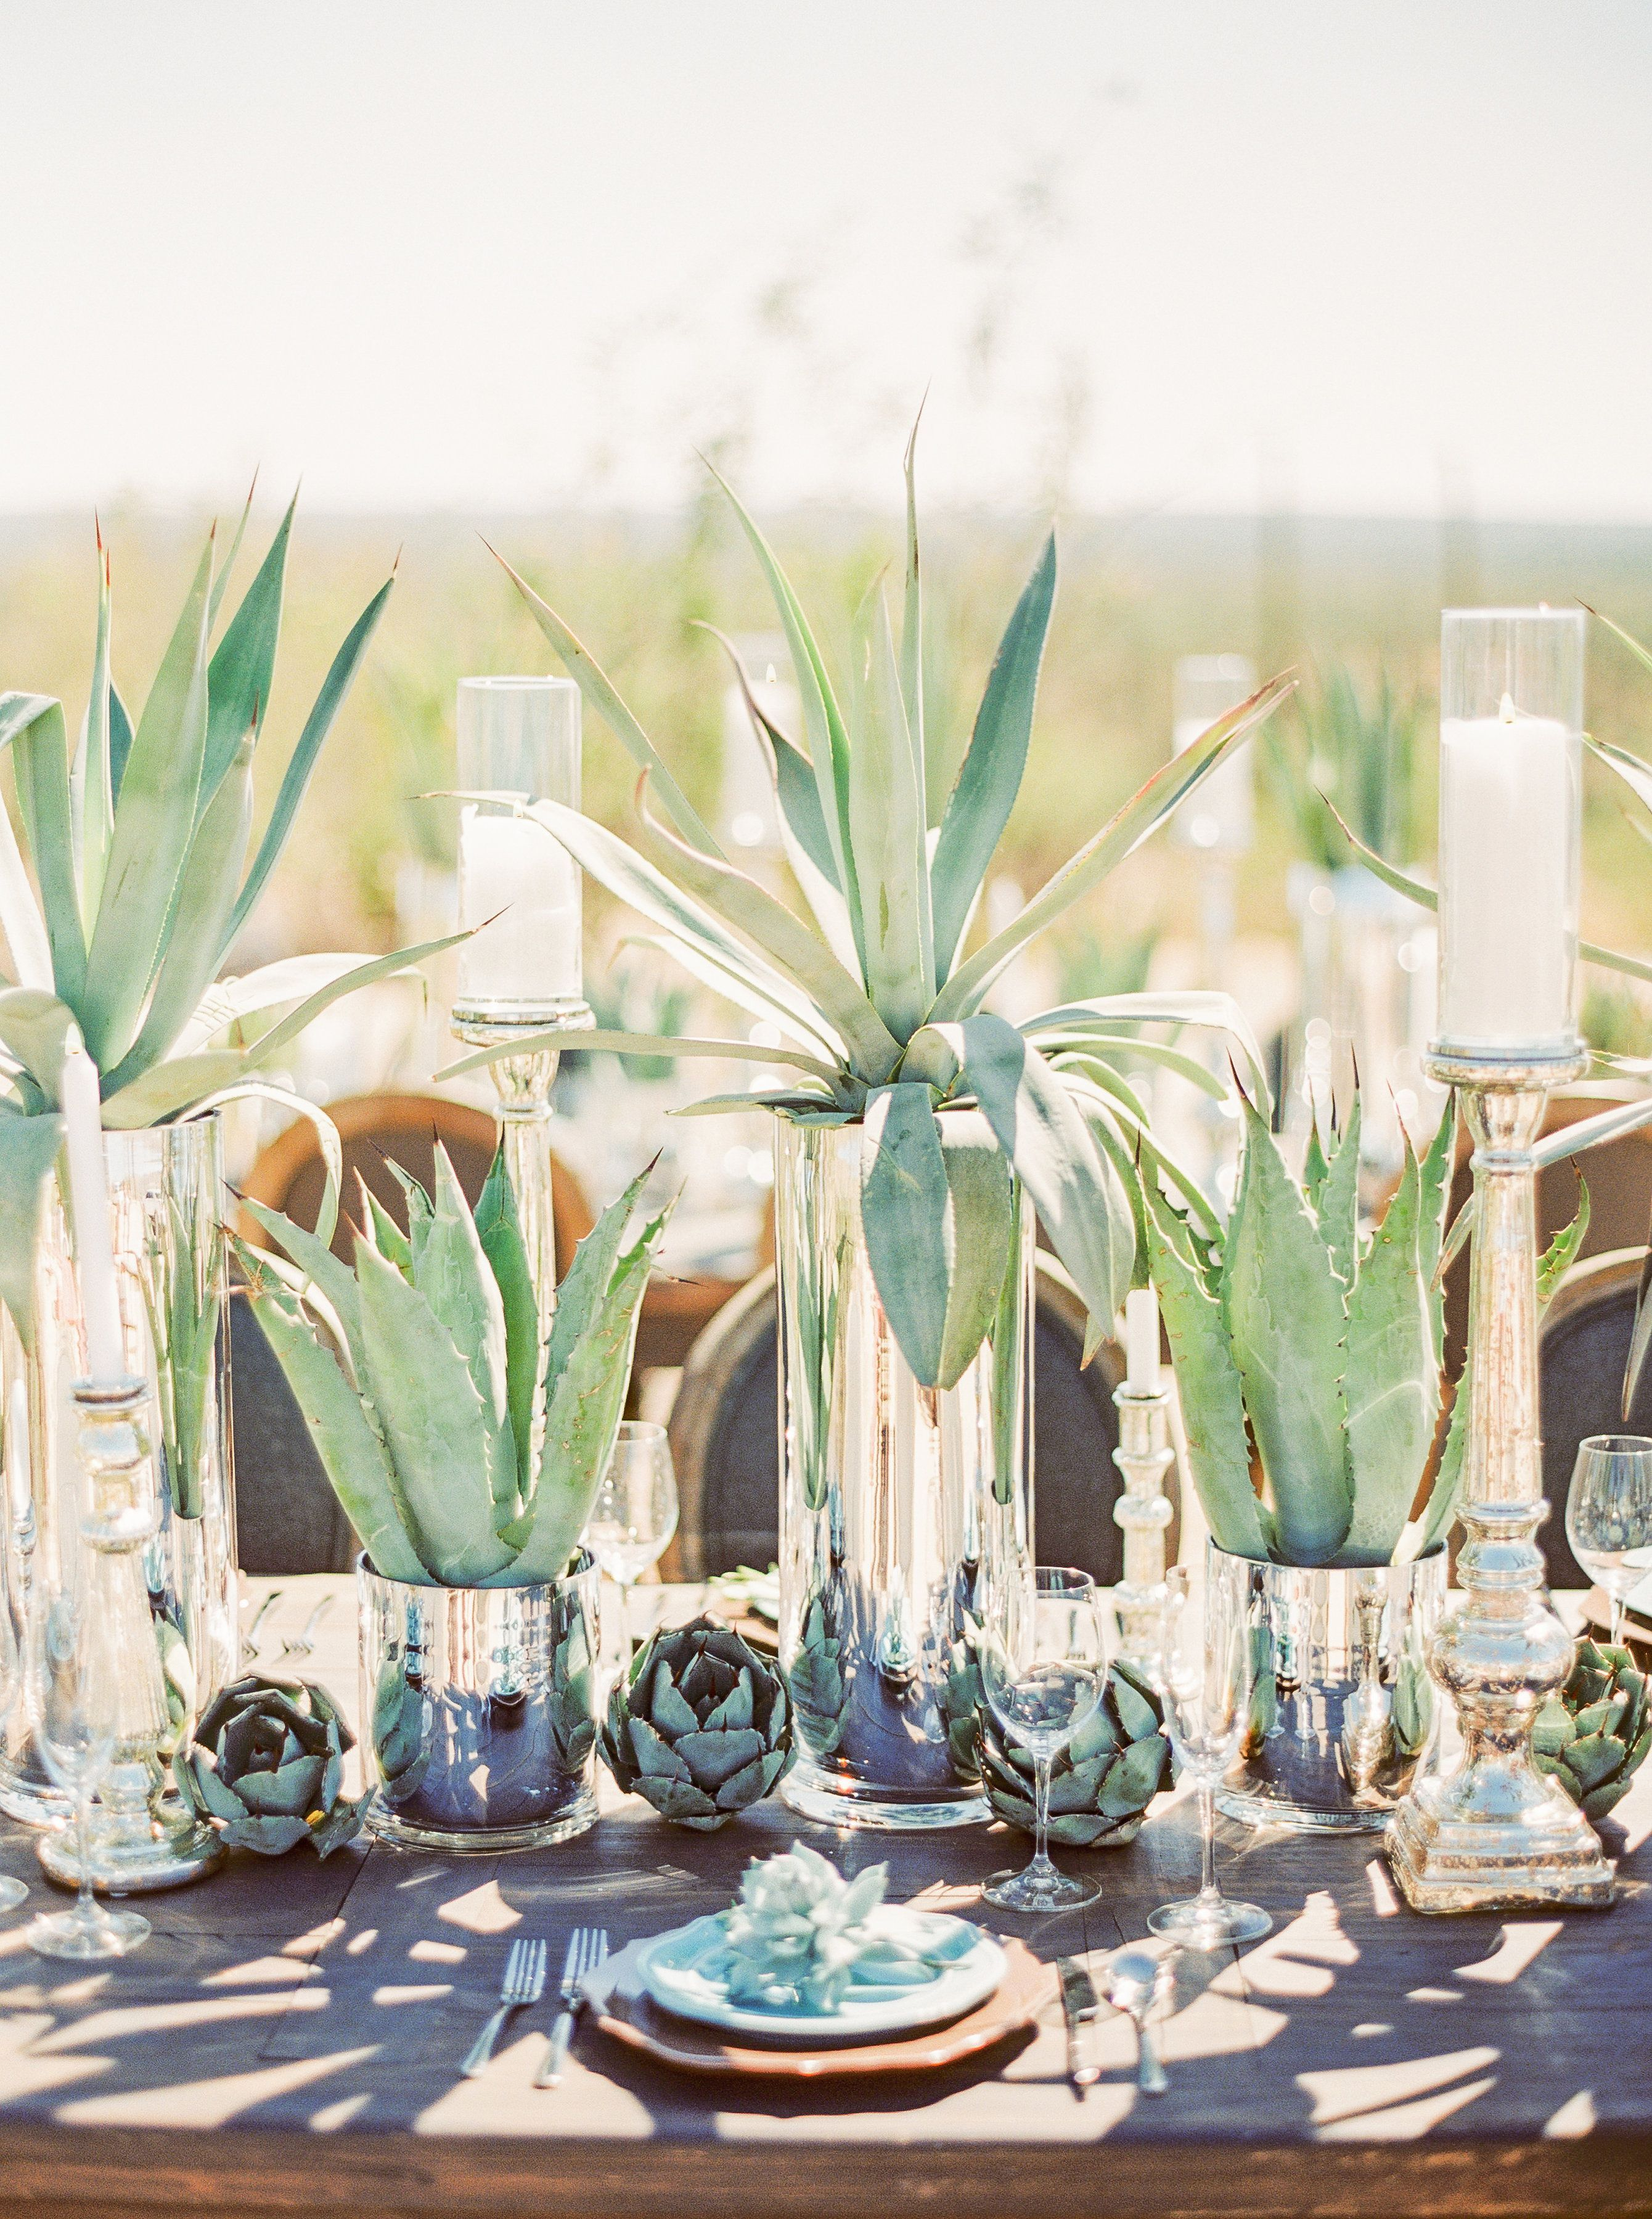 Our 20 Favorite Wedding Centerpieces for 2019 | A Practical Wedding